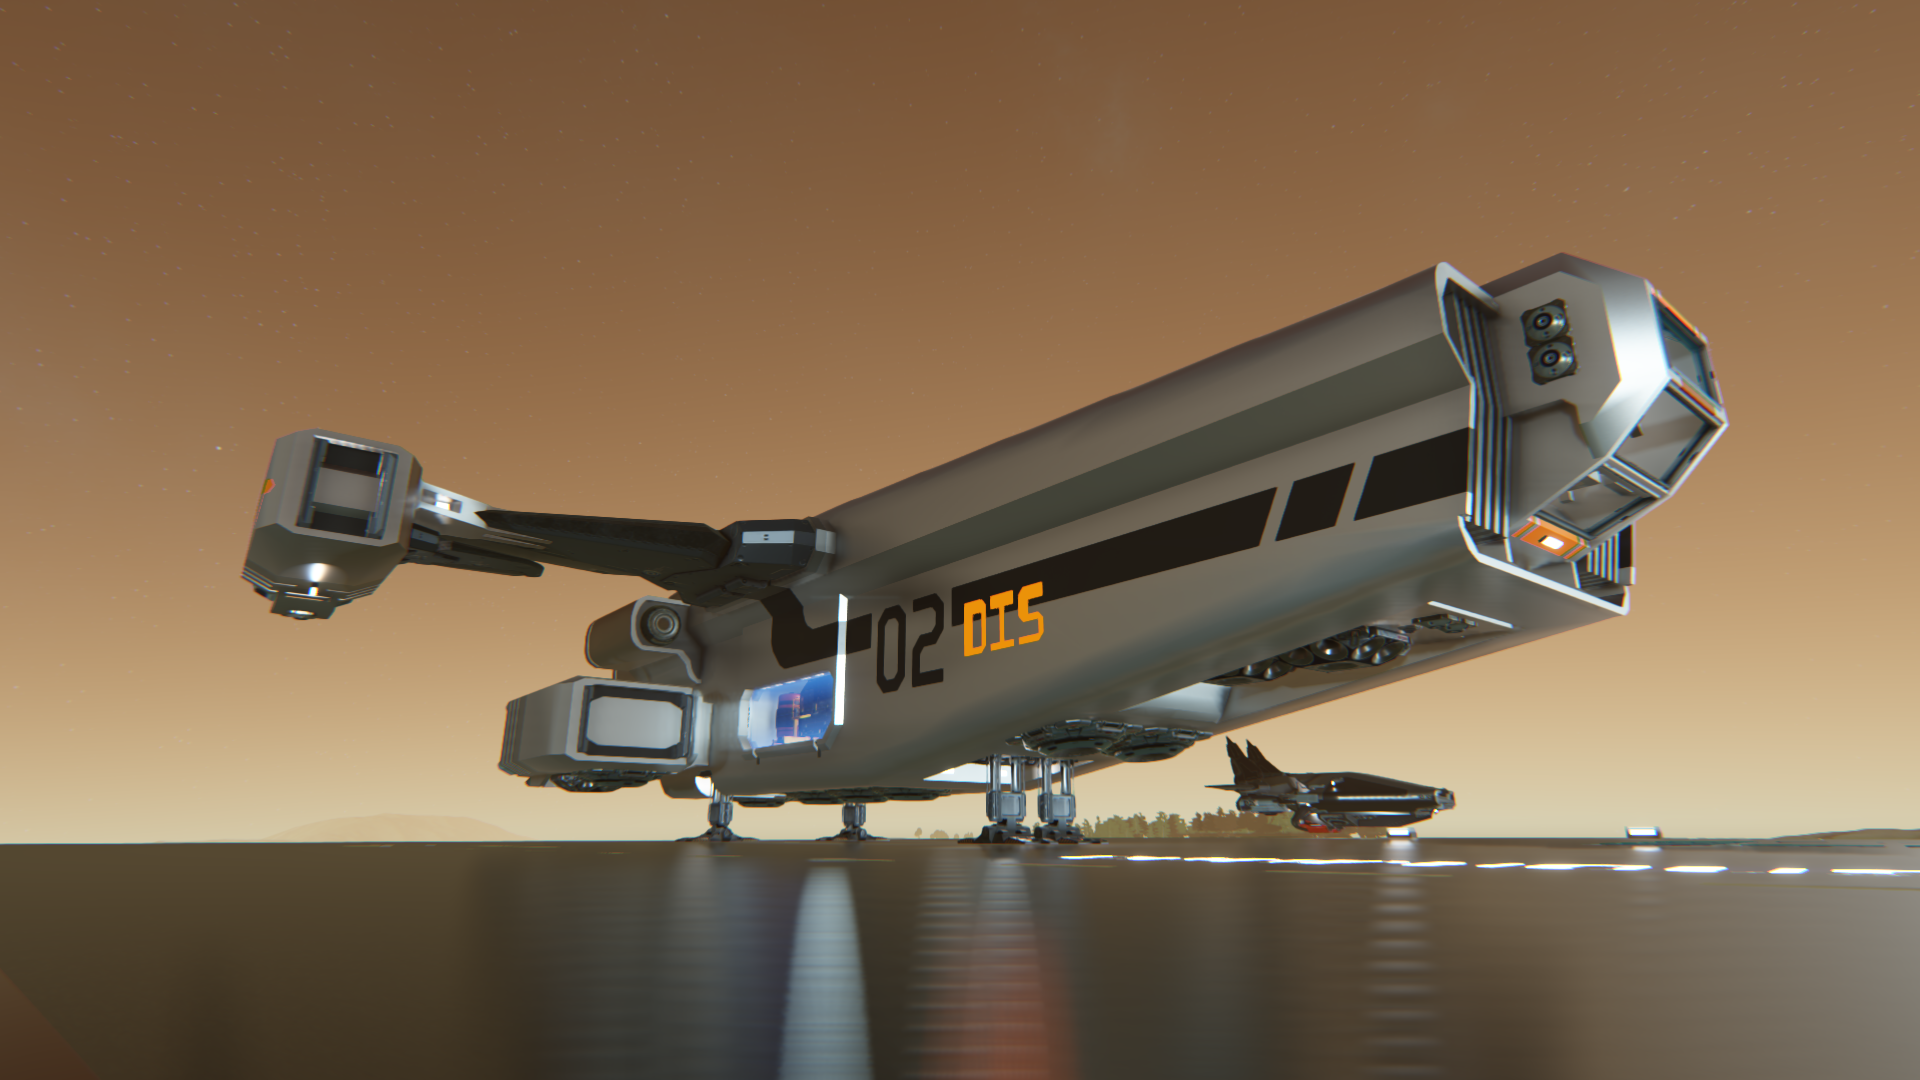 dualuniverse_2020-10-24t22h08m18s.png